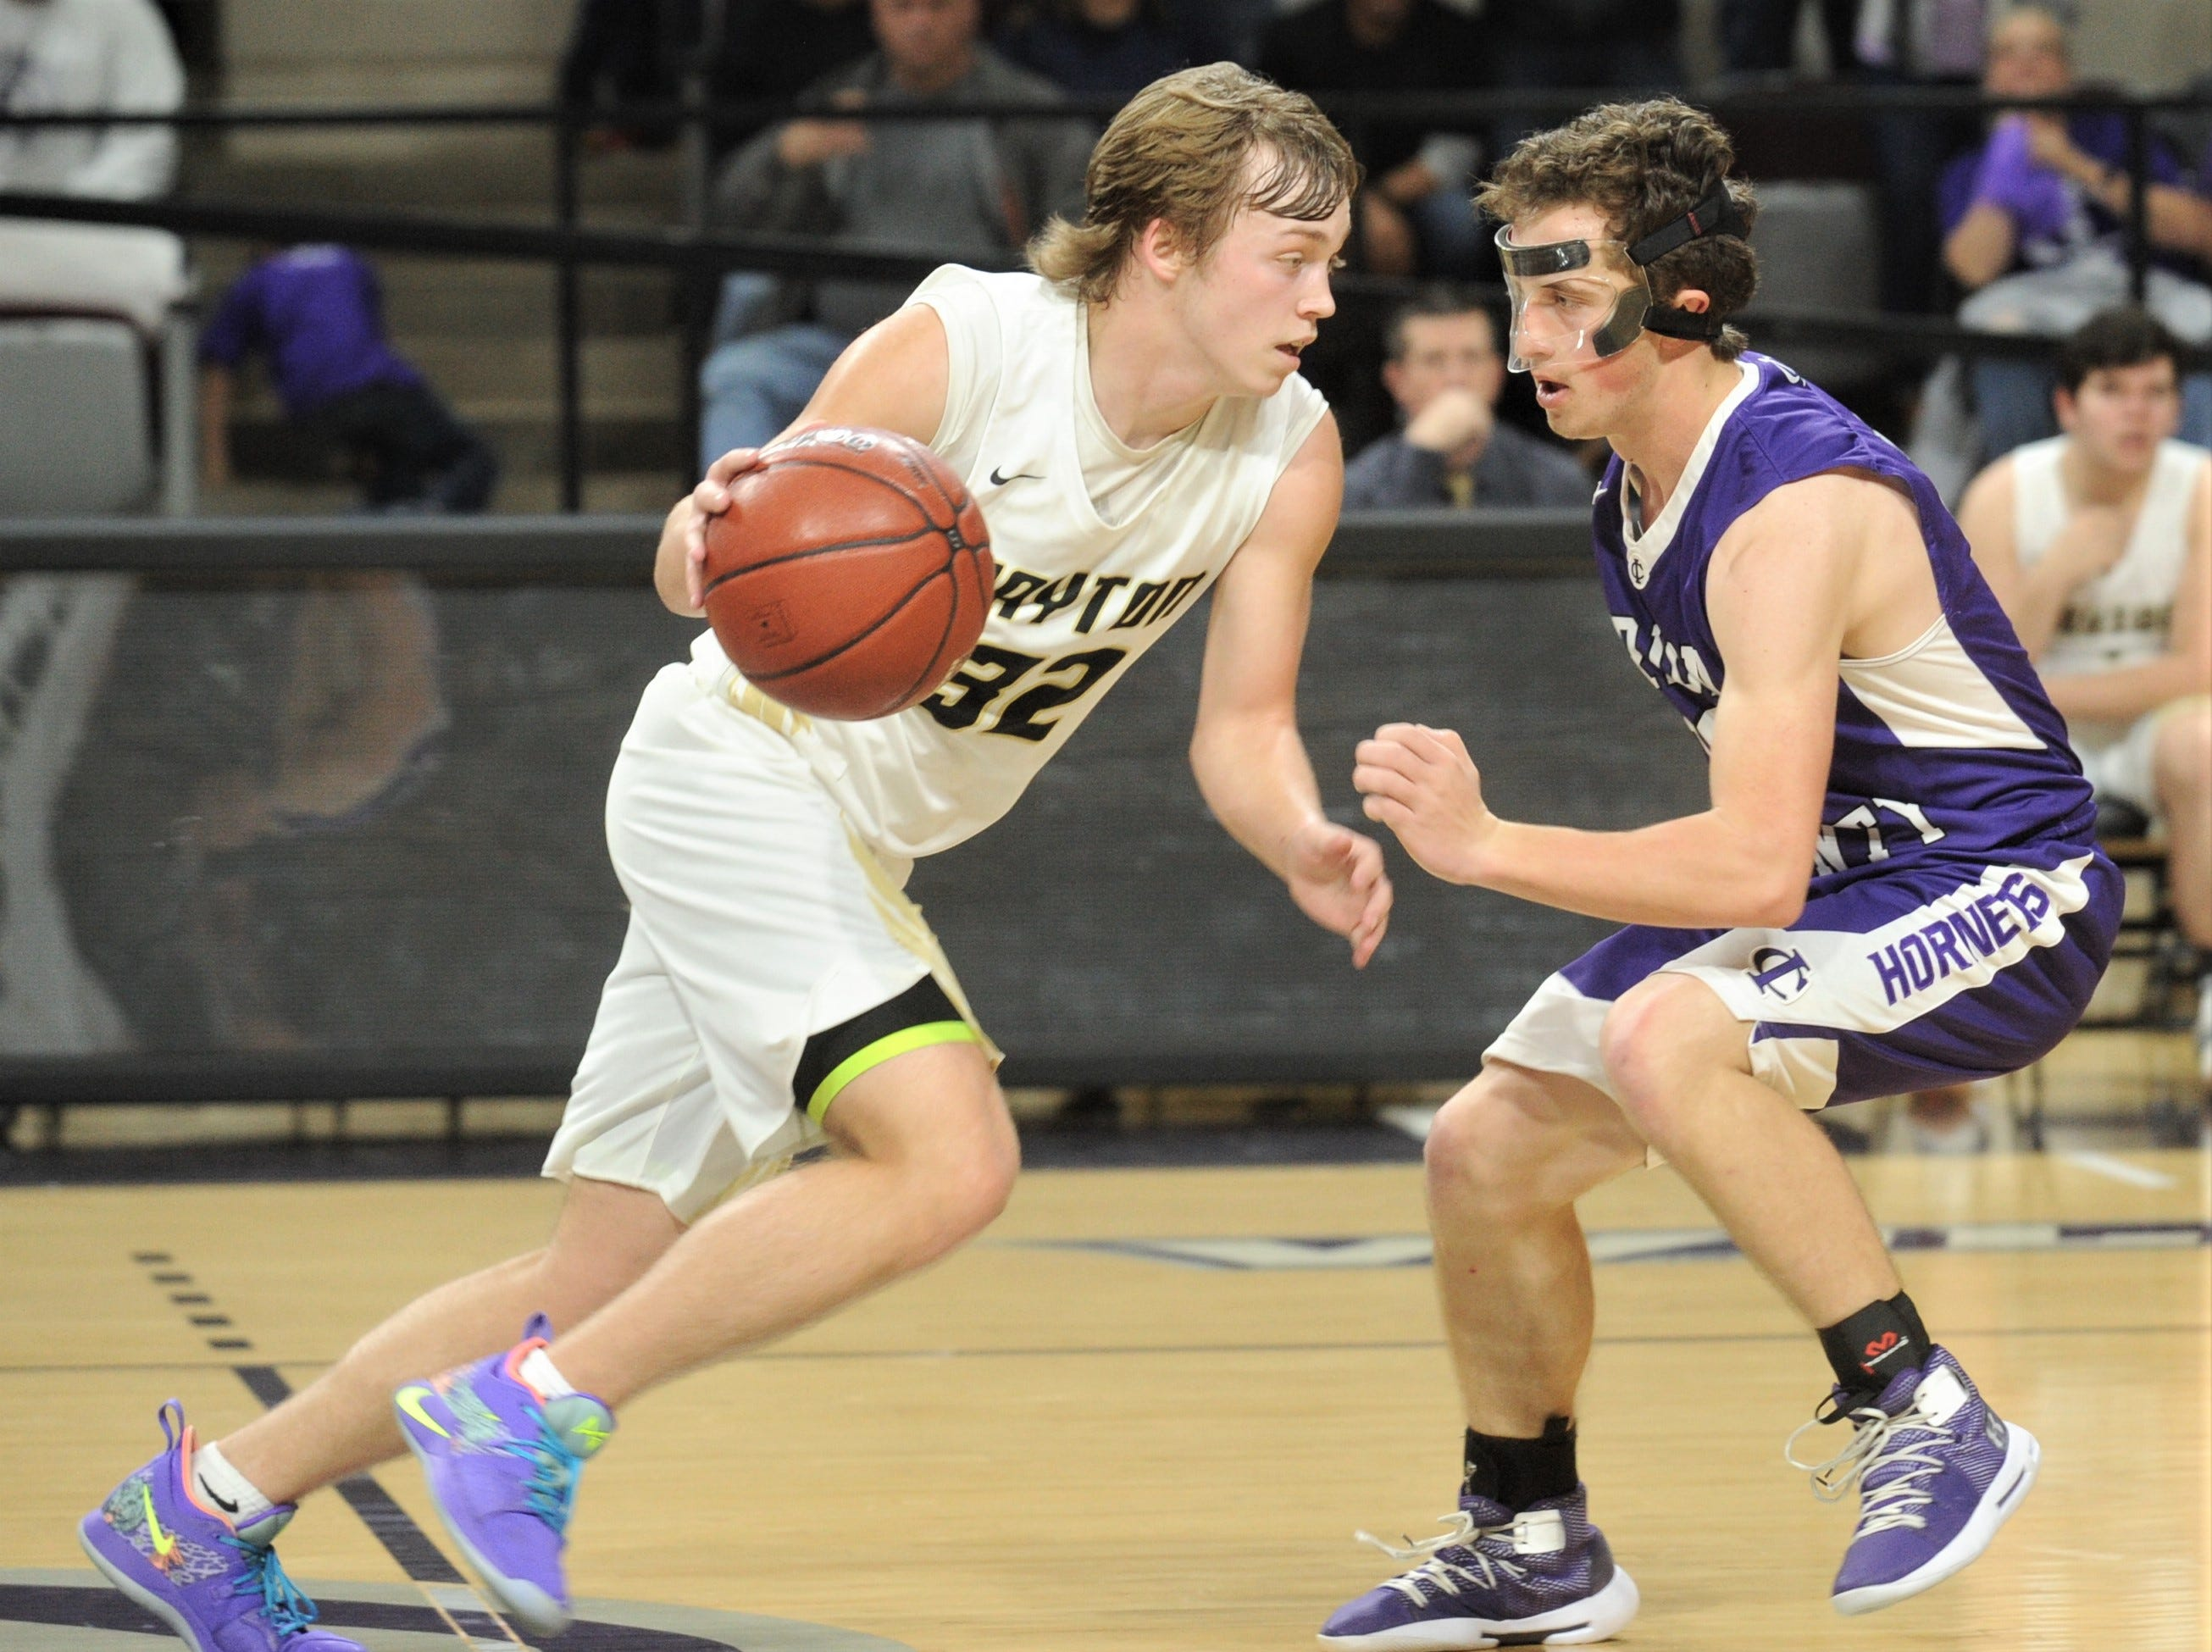 Jayton's Tye Scogin, left, tries to drive past Irion County's Sawyer Paxton. The Jaybirds beat Irion County 47-32 in the Region II-1A championship game Saturday, March 2, 2019, at Abilene Christian's Moody Coliseum.